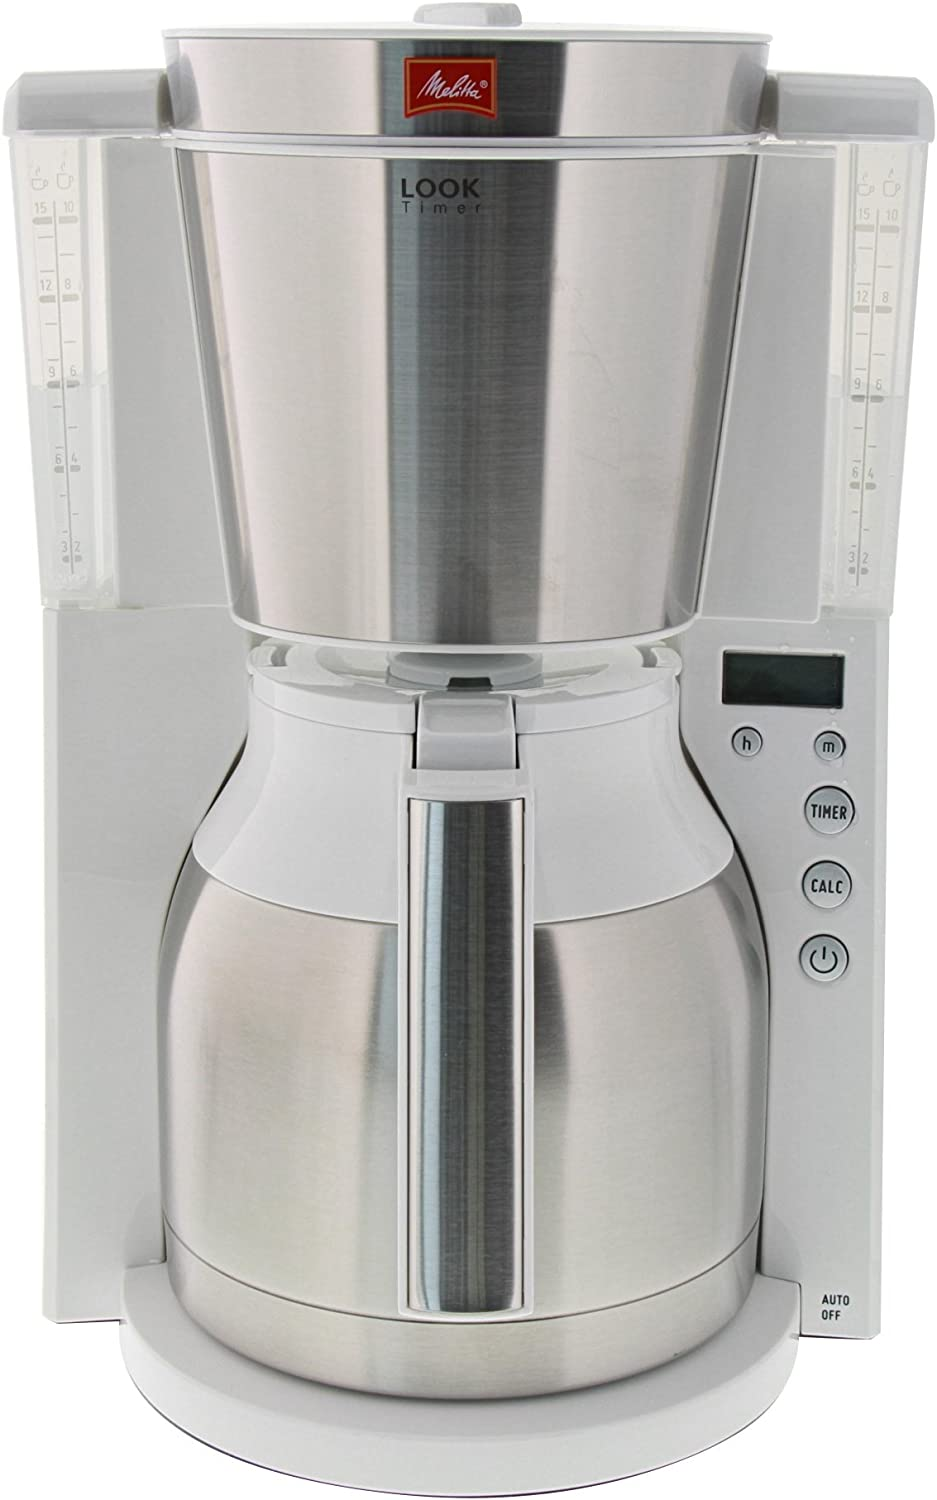 Melitta Thermo-Kaffeemaschine 1011-15 Look Therm Timer weiss//Edelstahl